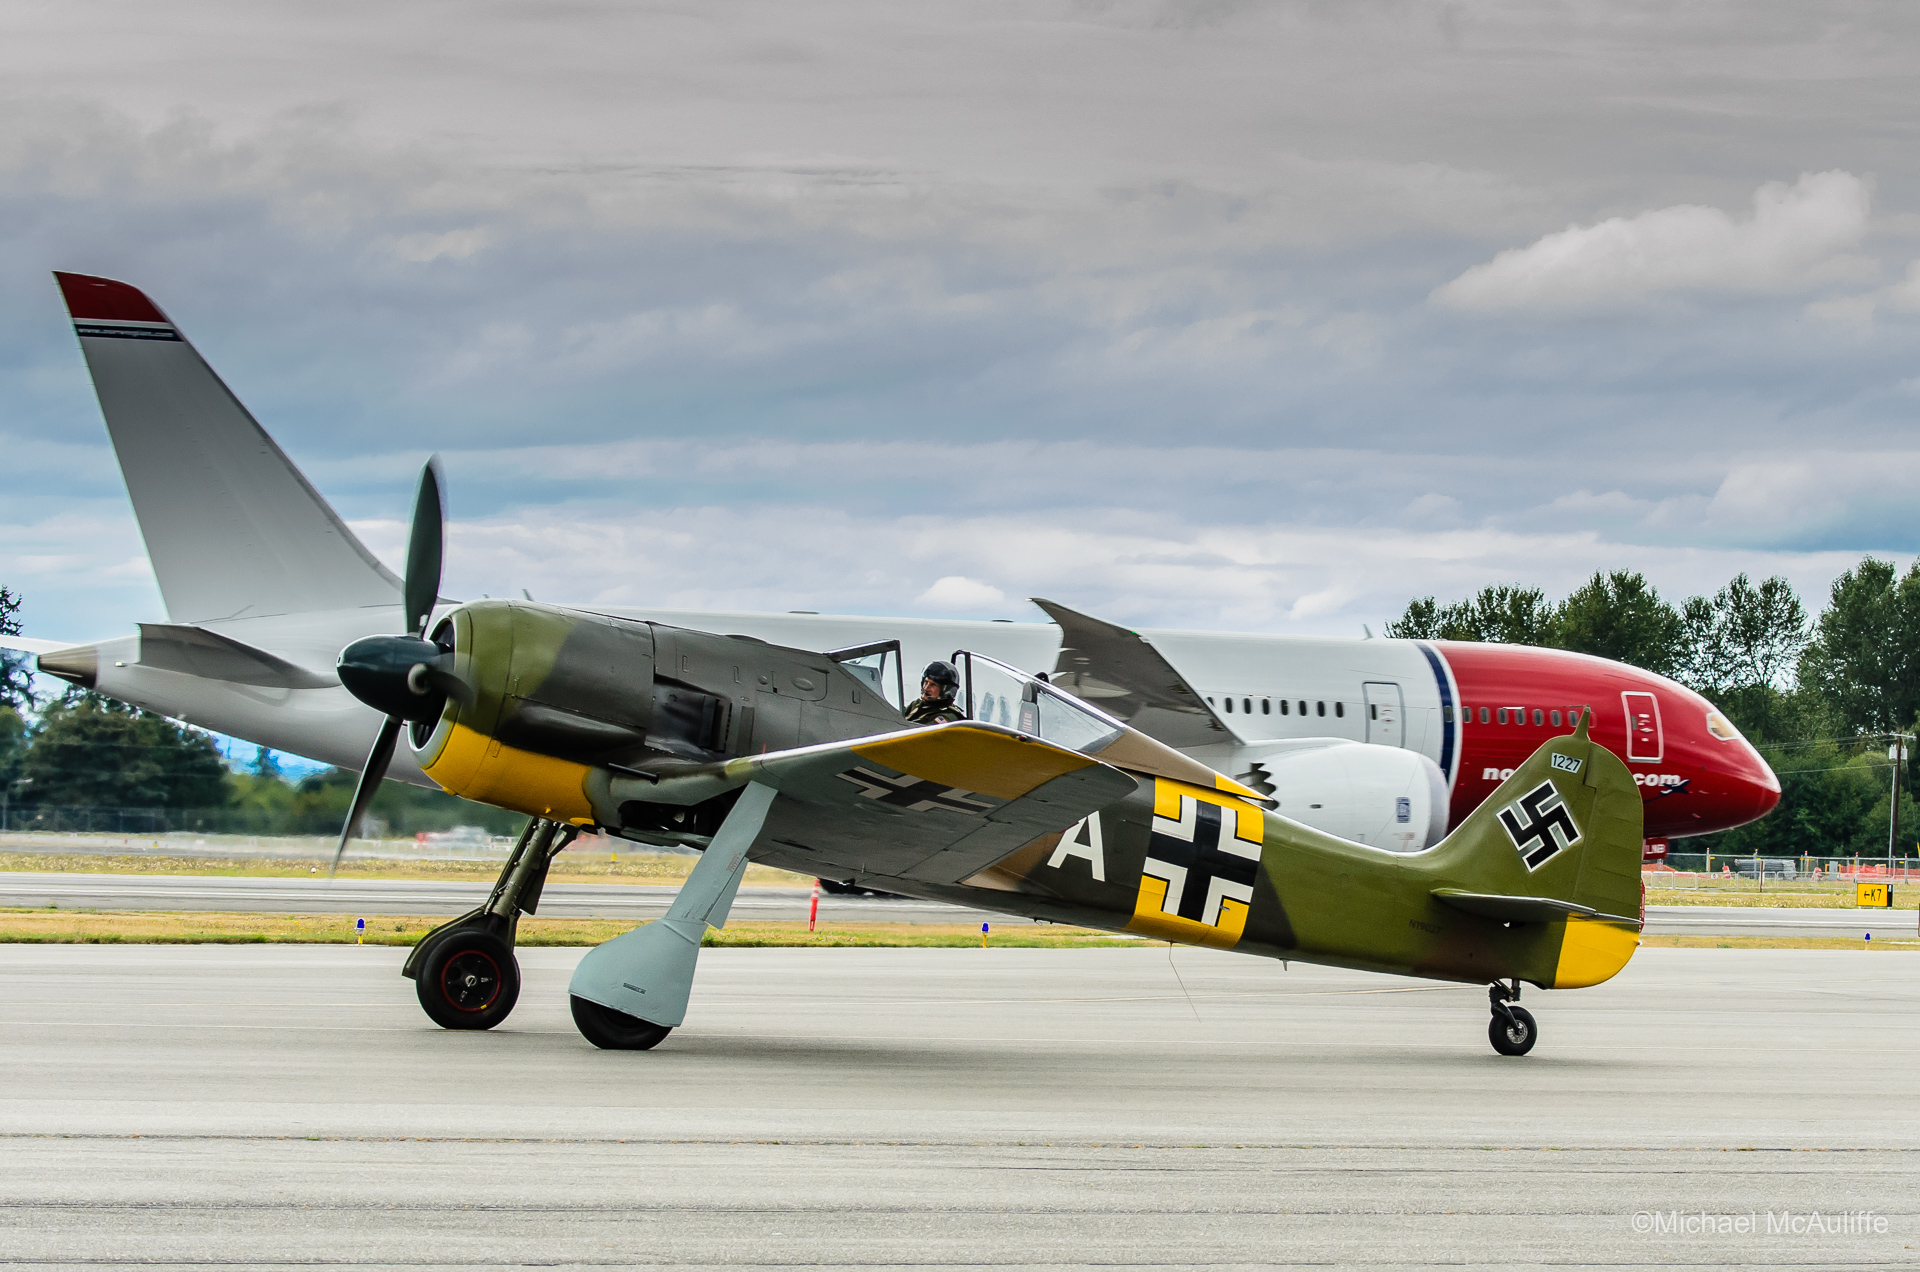 Focke-Wulf Fw 190 A-5 and Boeing 787 Dreamliner